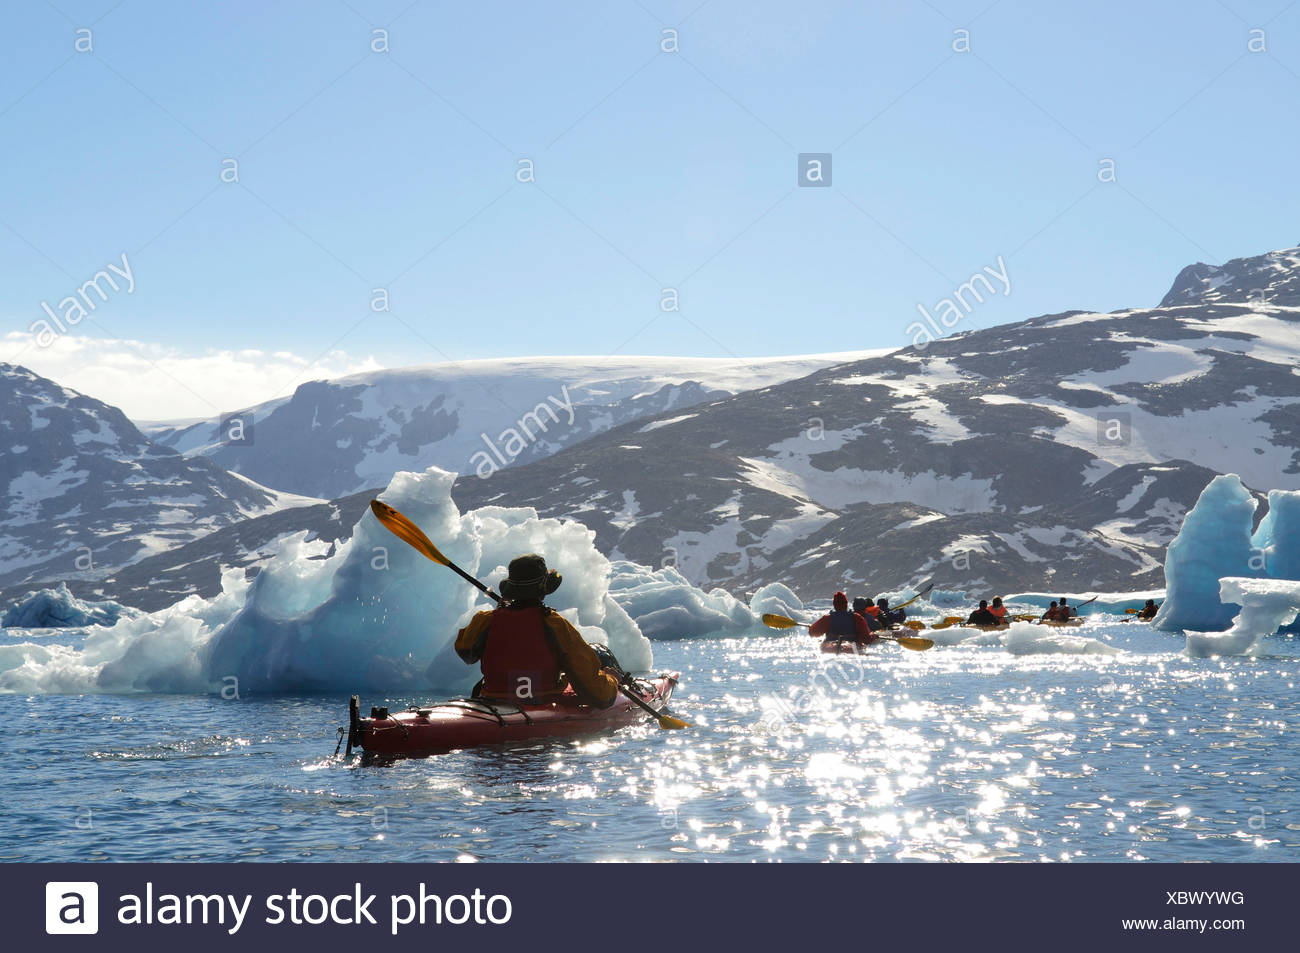 Icebergs and kayakers in the Stoklund-Fjord, East Greenland, Greenland Stock Photo